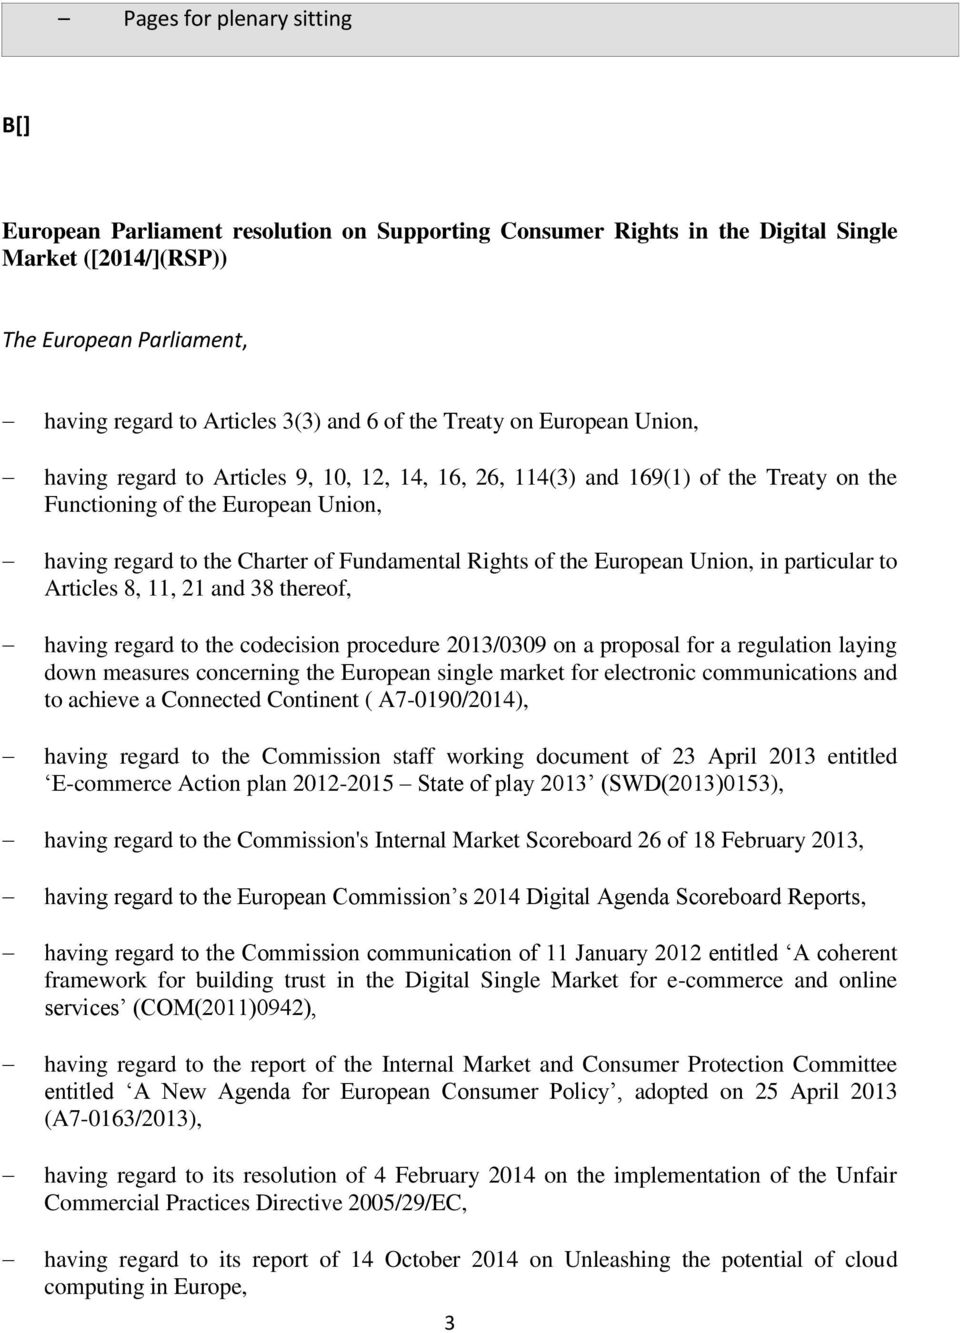 Rights of the European Union, in particular to Articles 8, 11, 21 and 38 thereof, having regard to the codecision procedure 2013/0309 on a proposal for a regulation laying down measures concerning